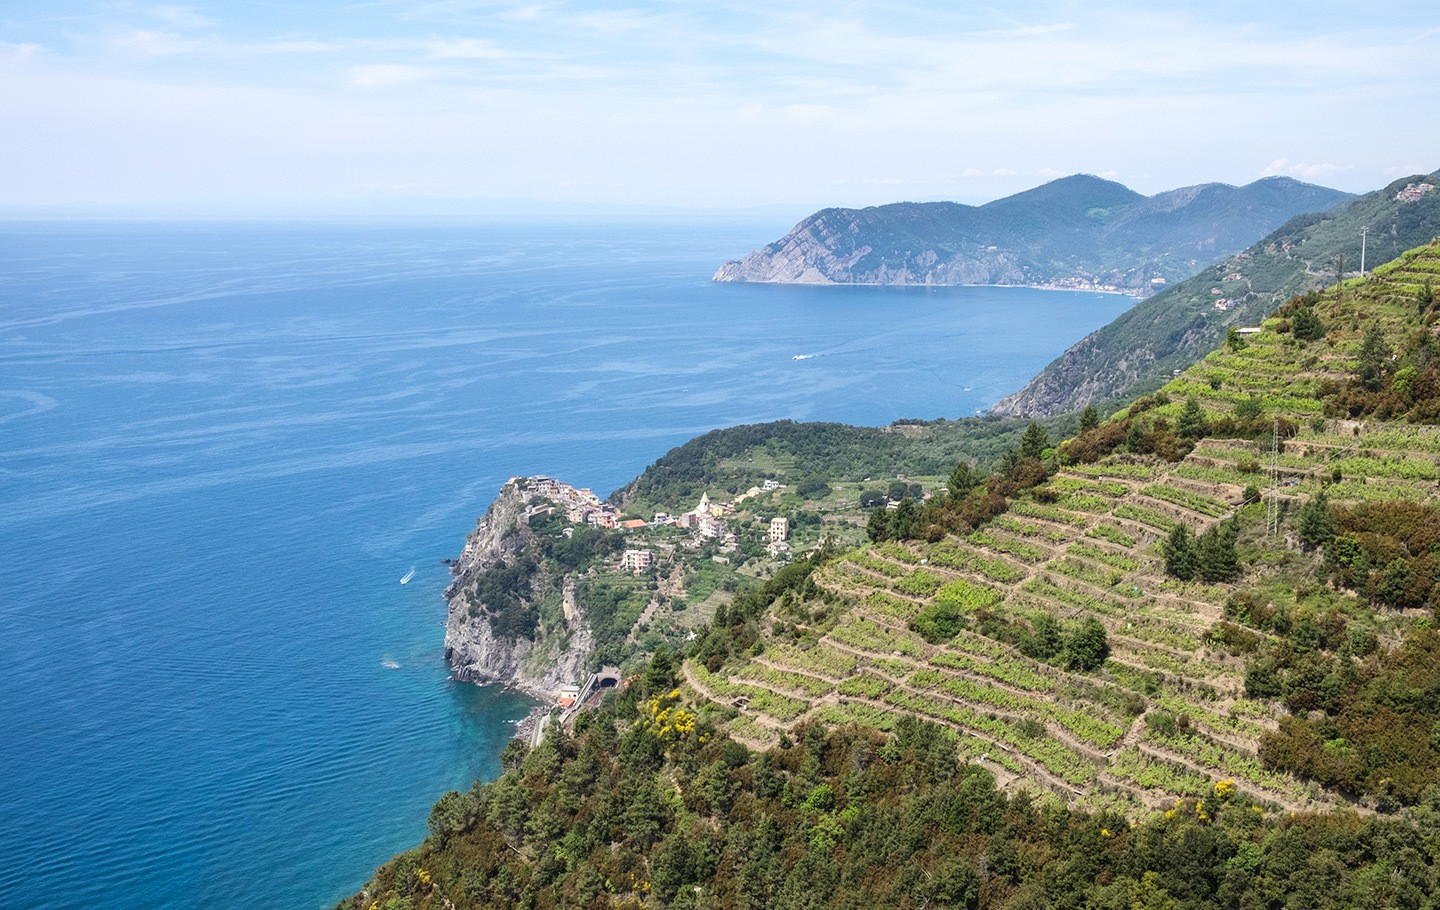 Looking down on Corniglia from the vineyard path in the Cinque Terre